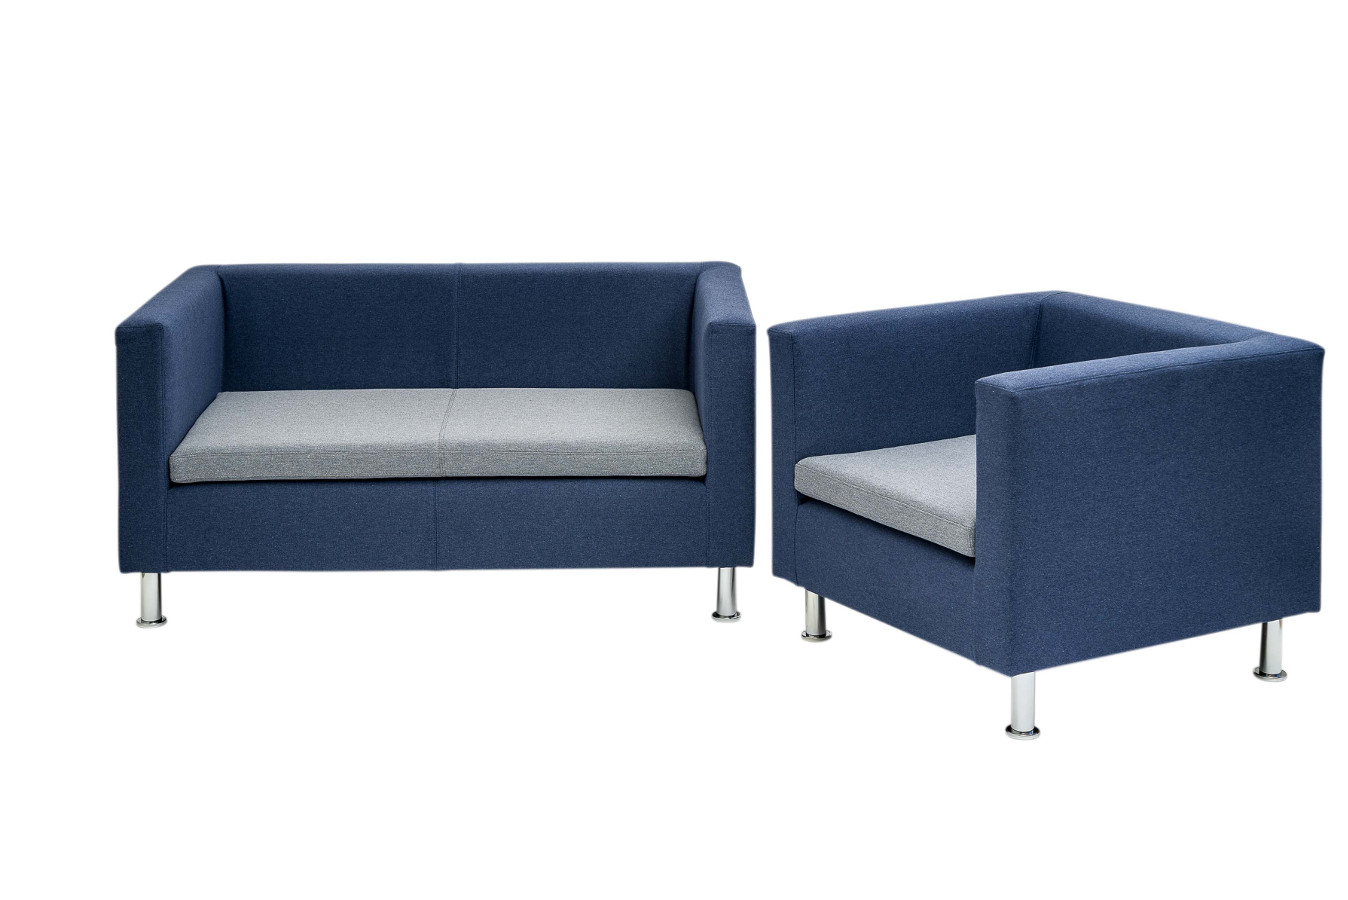 Sessel Und Couch Vibe Sofa Und Sessel Madeinitaly De